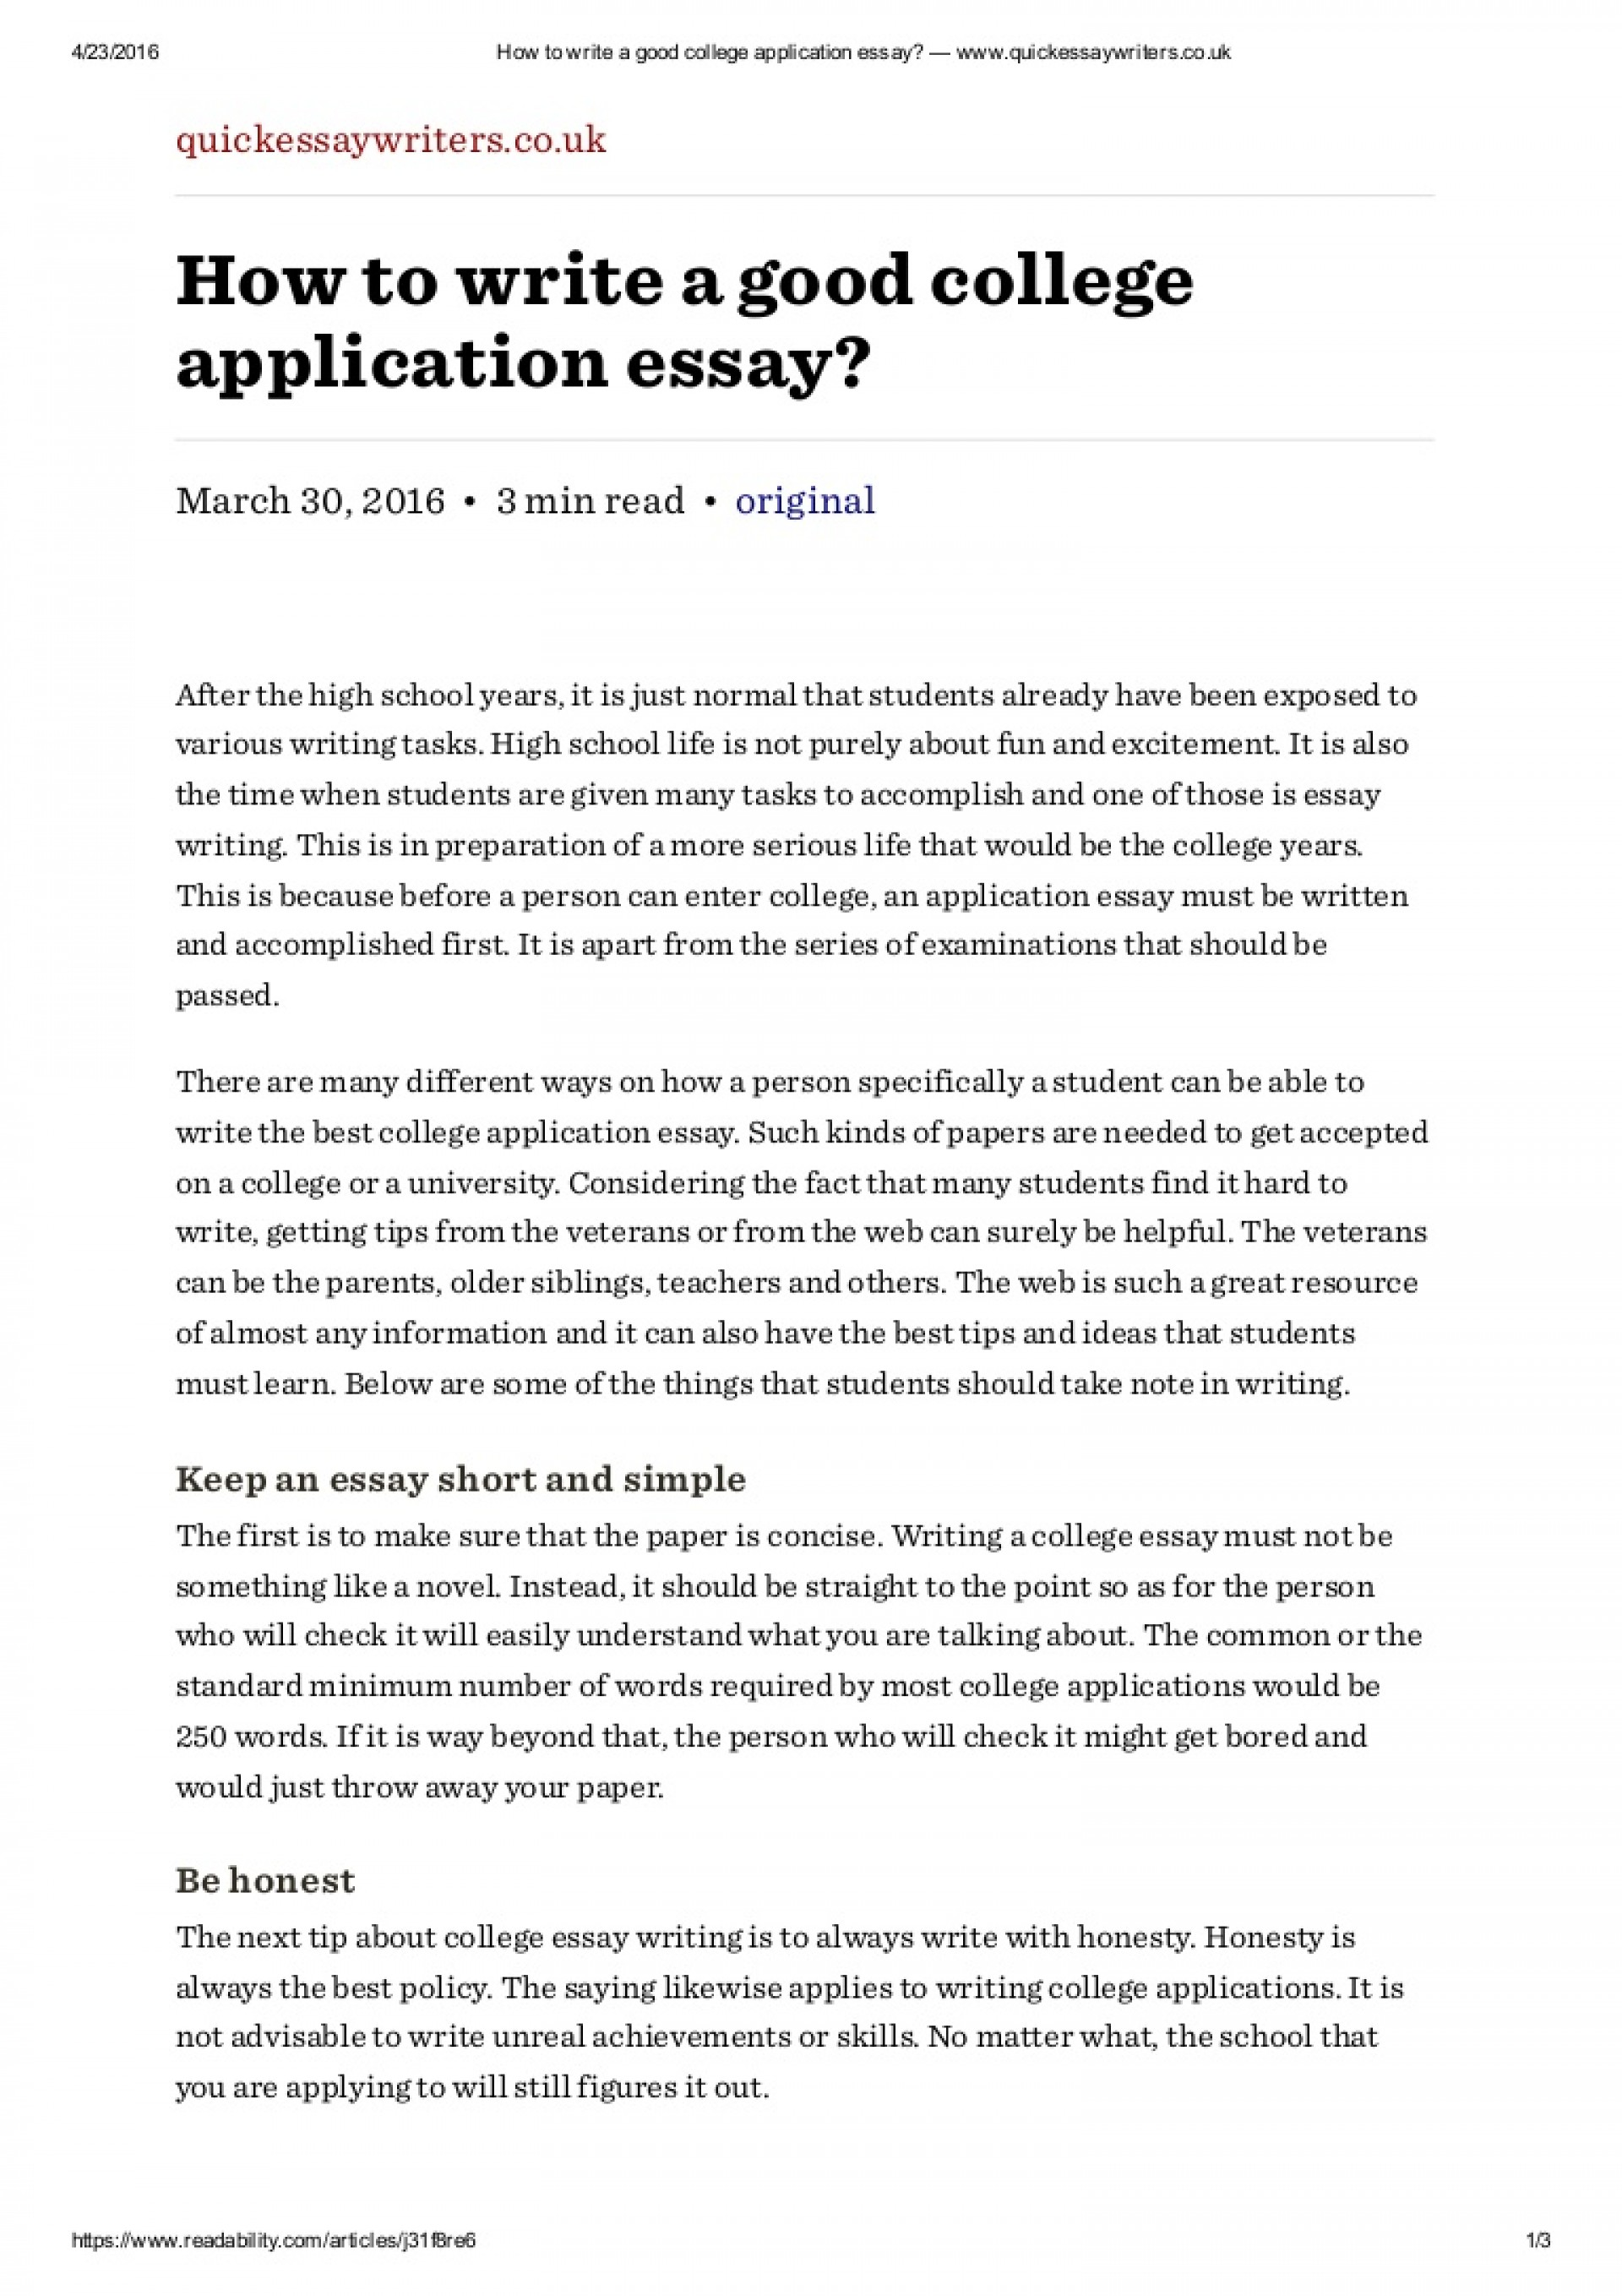 009 Howtowriteagoodcollegeapplicationessaywww Thumbnail Essay Example Writing College Rare A Application Topics To Write On Tips For About Yourself 1920